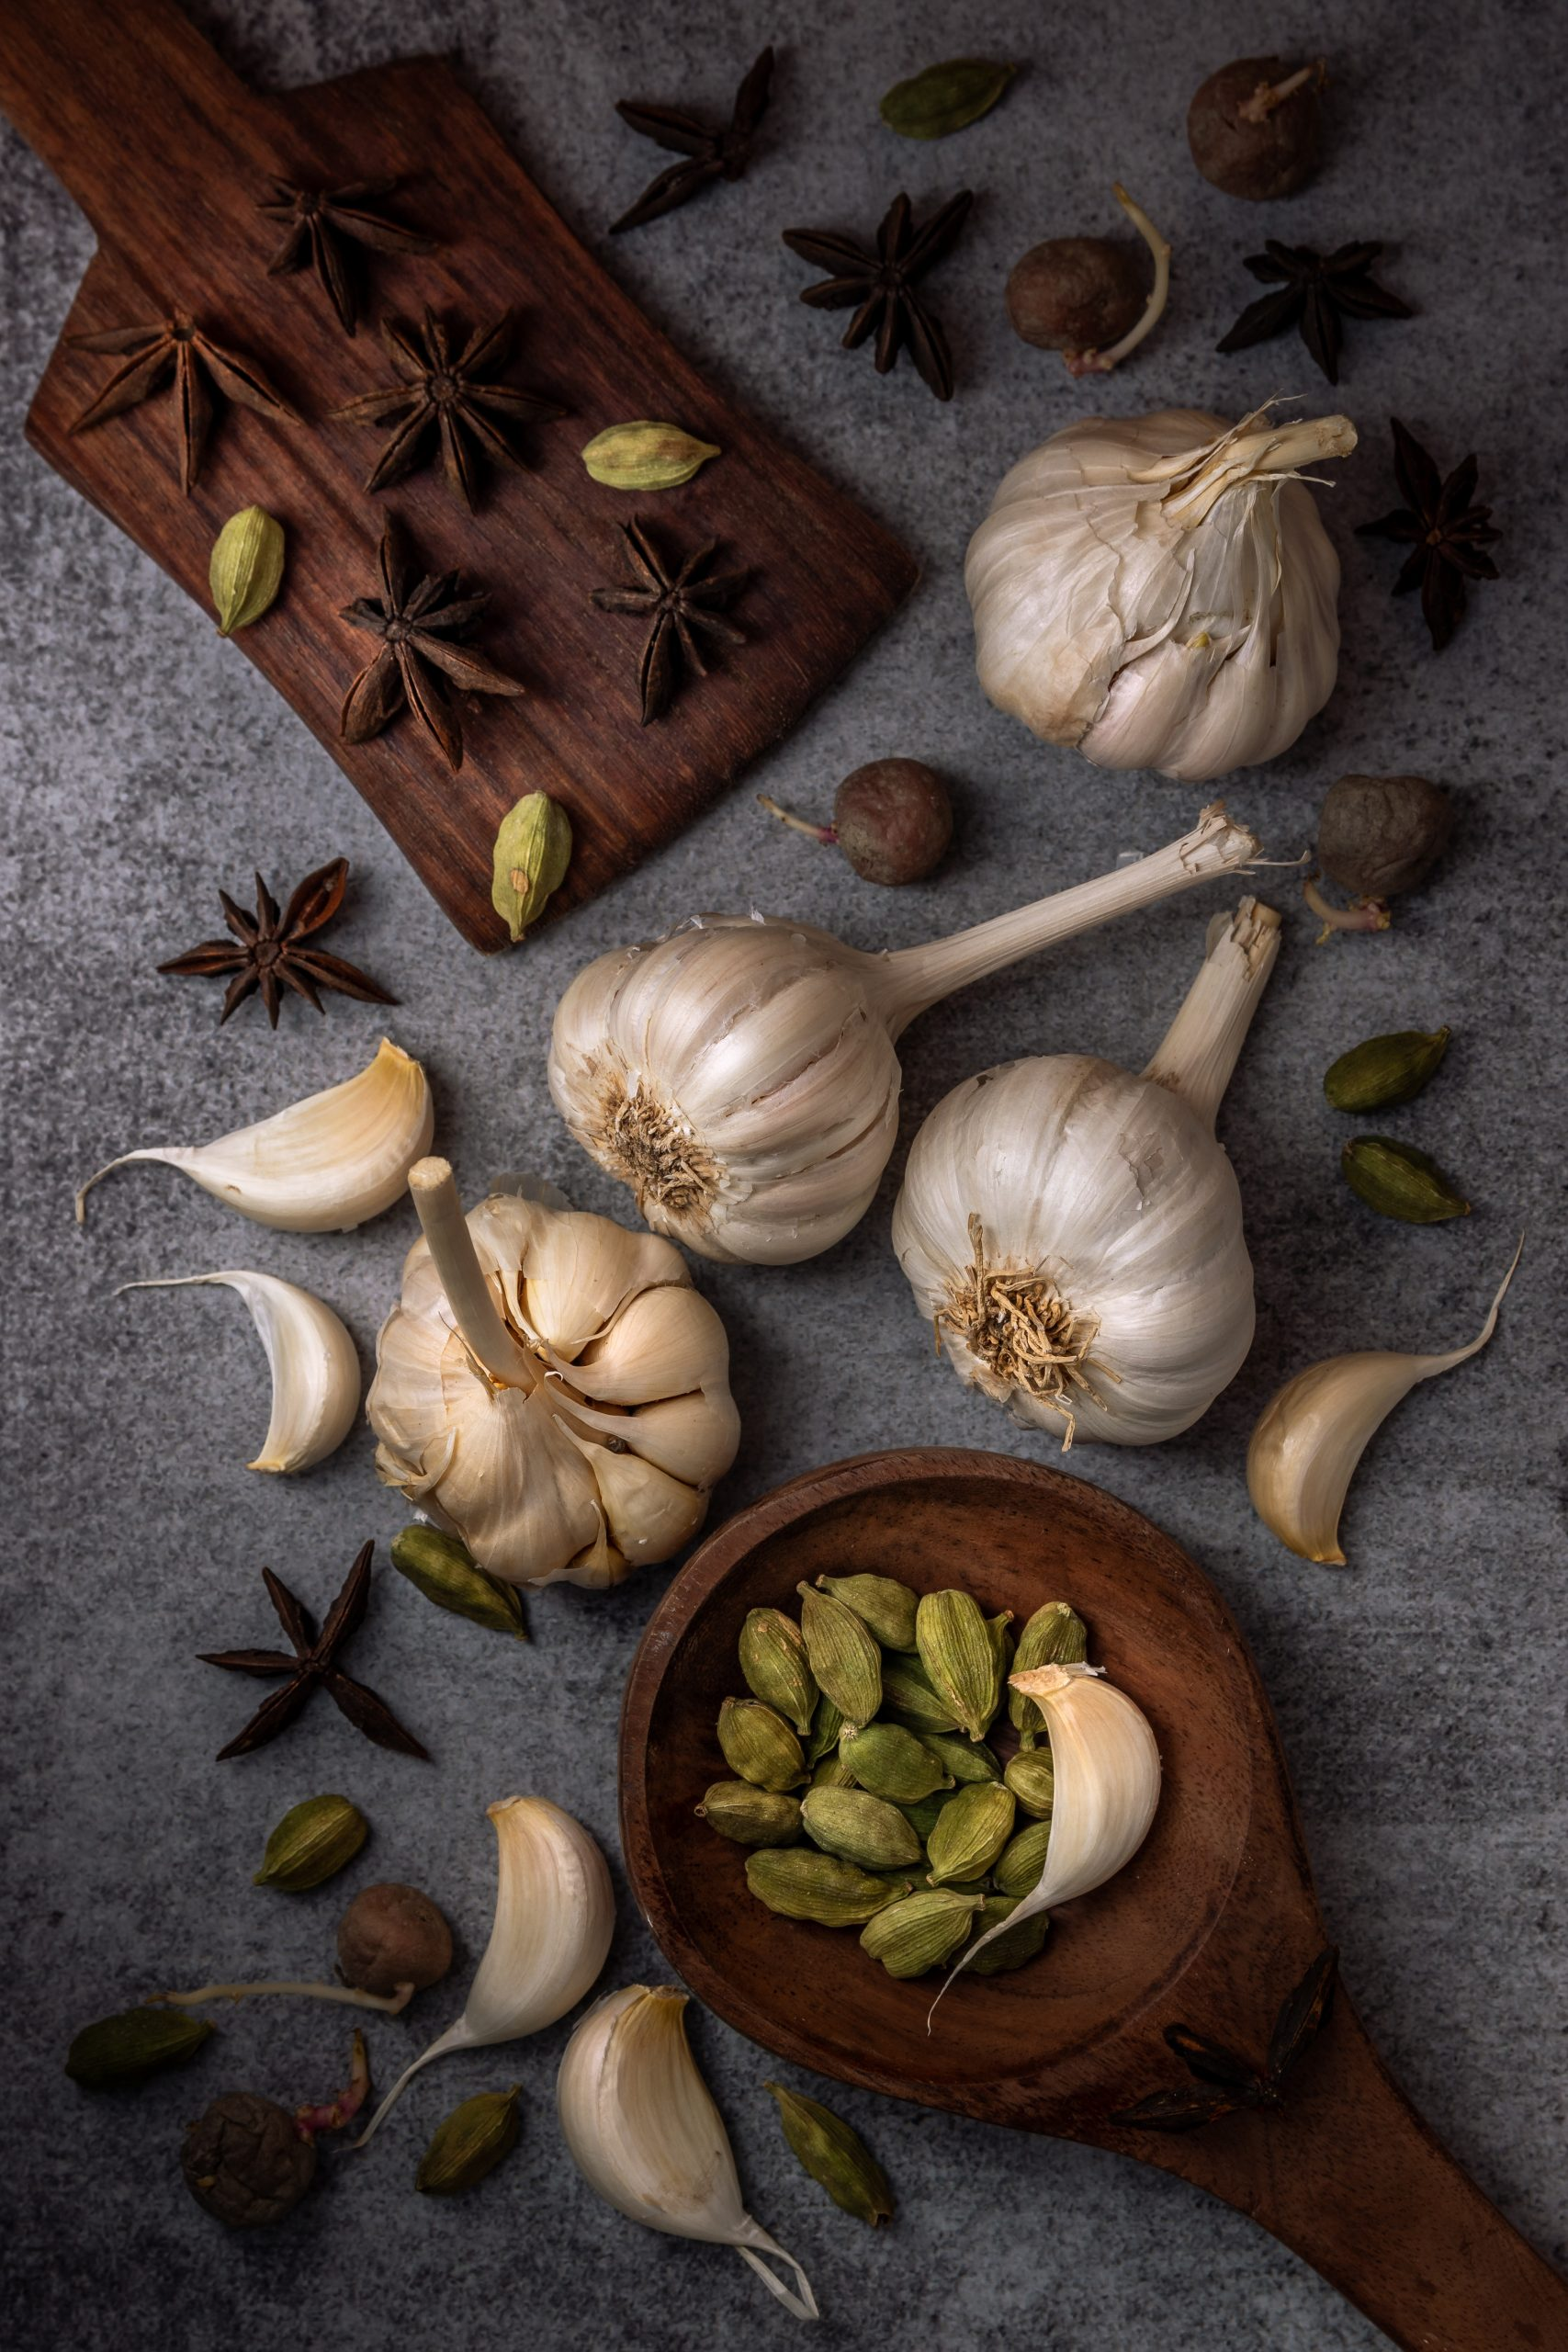 Garlic bulbs and other spices